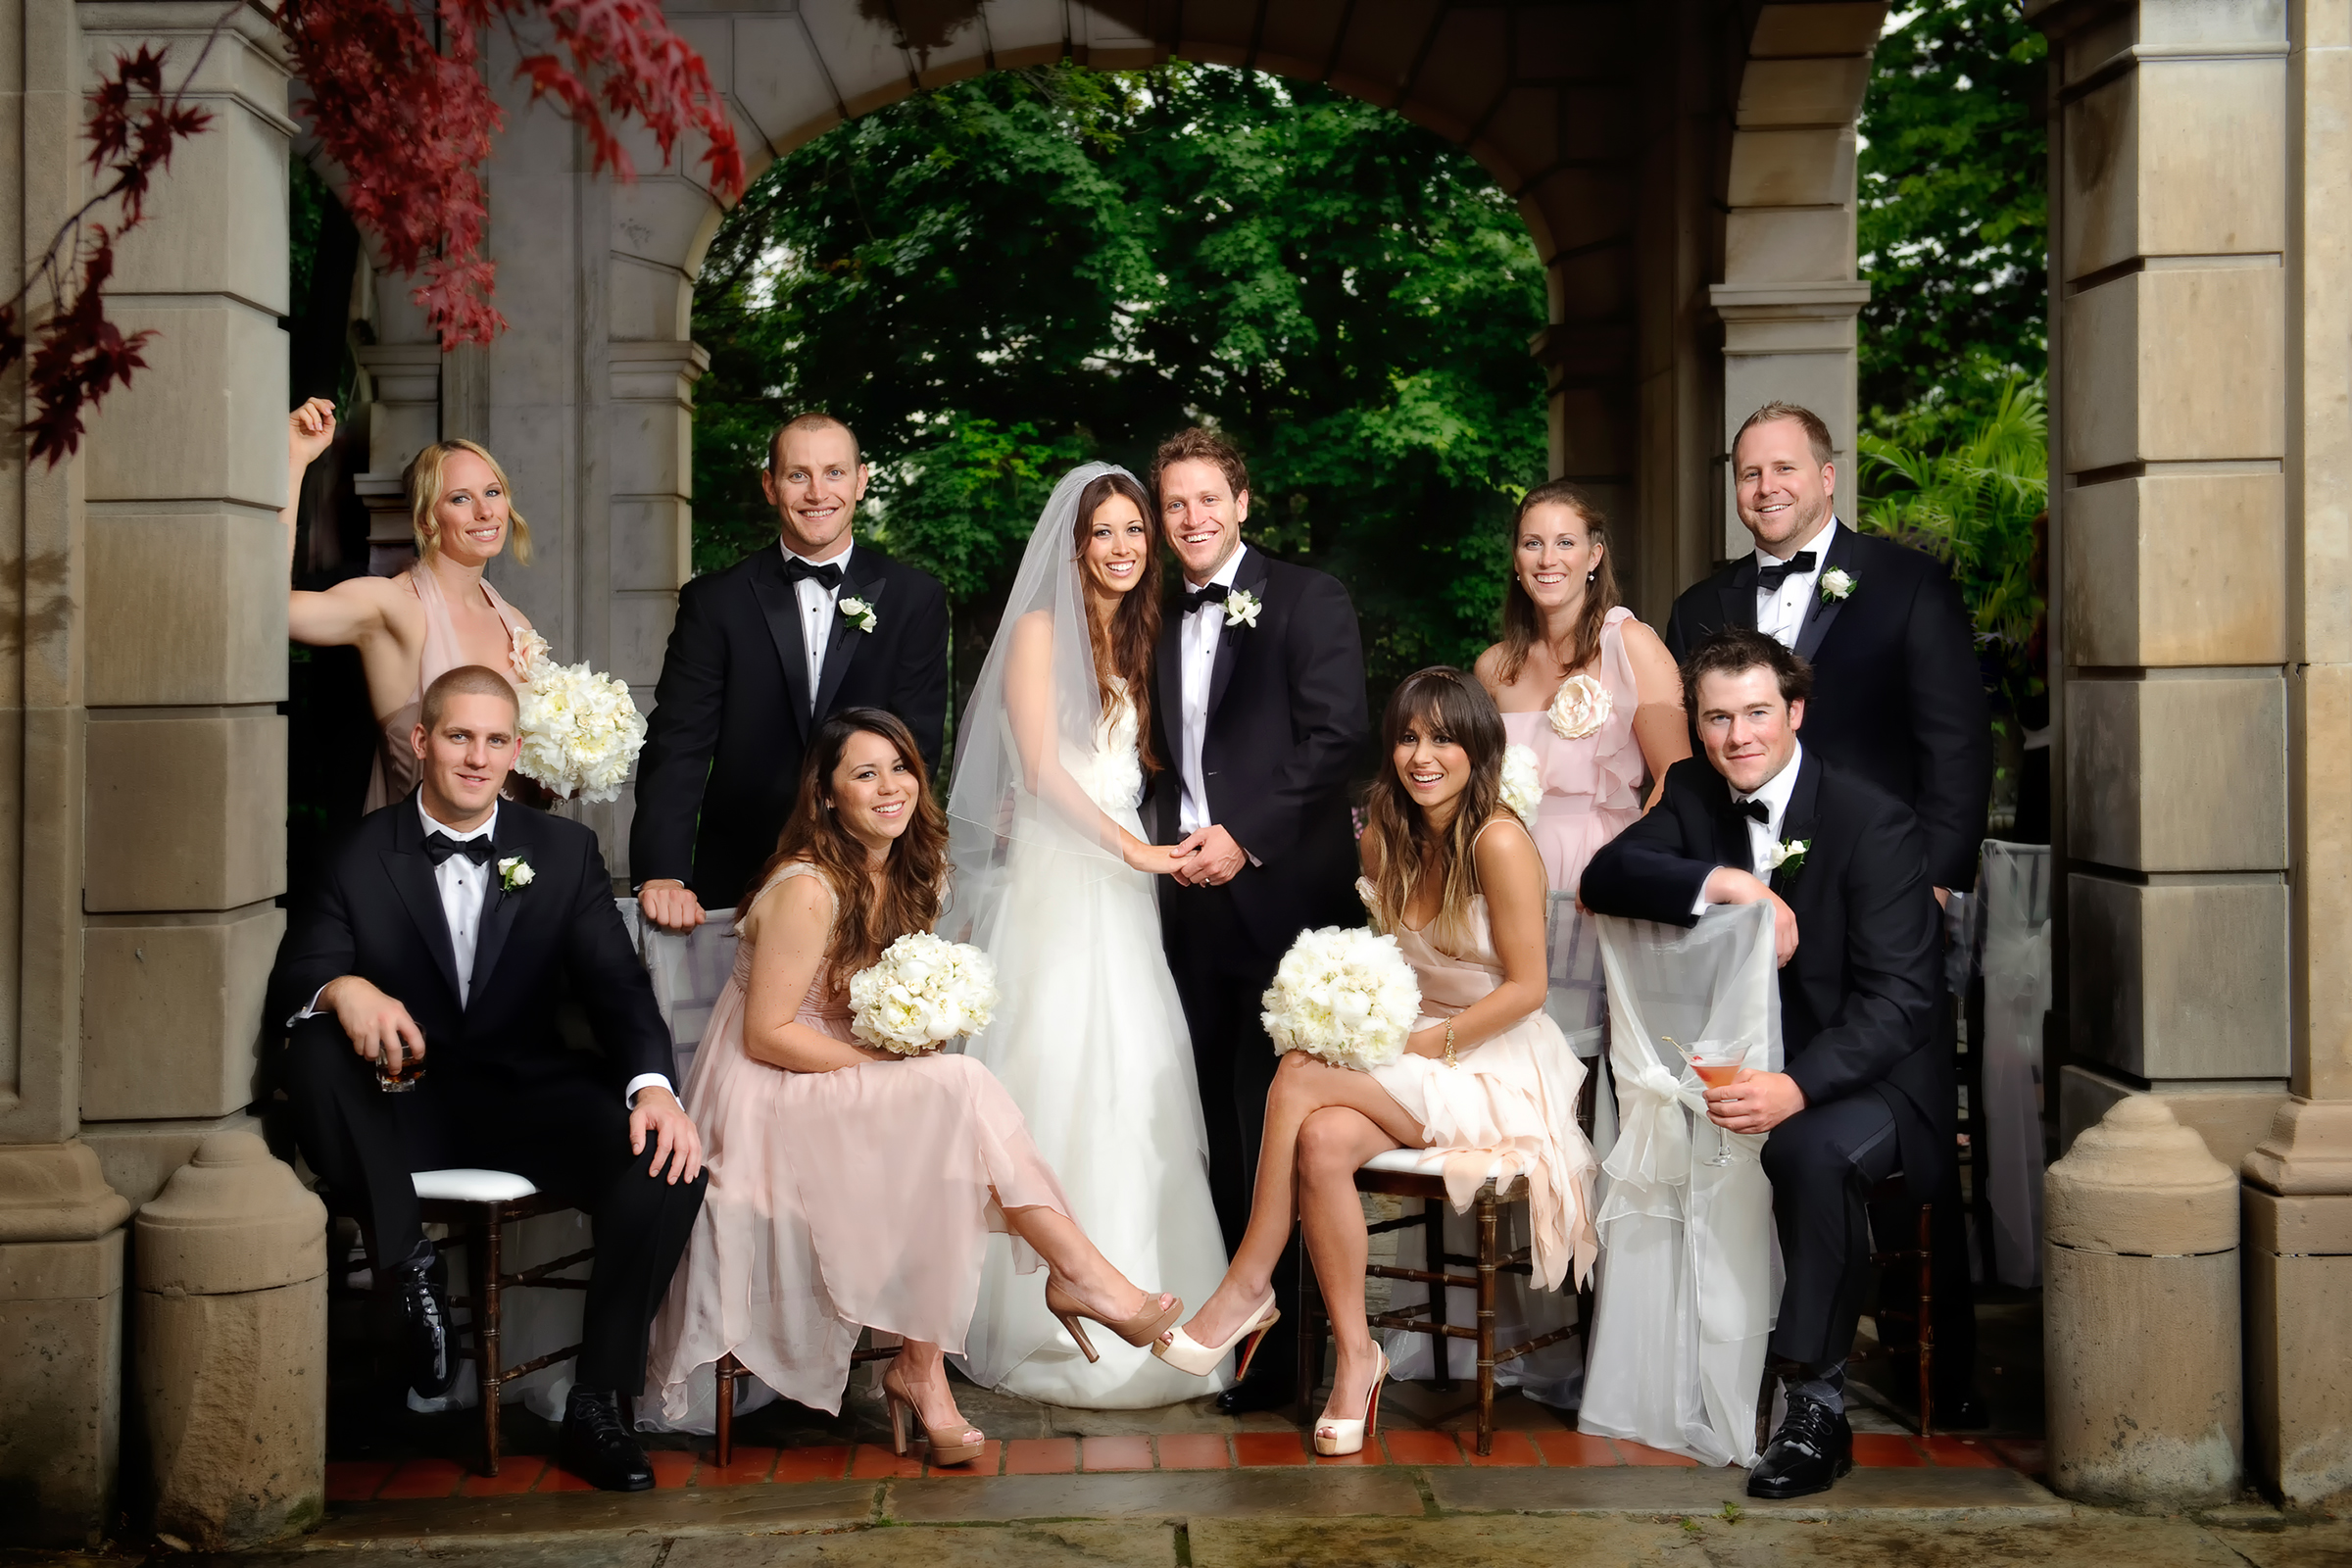 Group shot of bridal party - photo by Storey Wilkins Photography